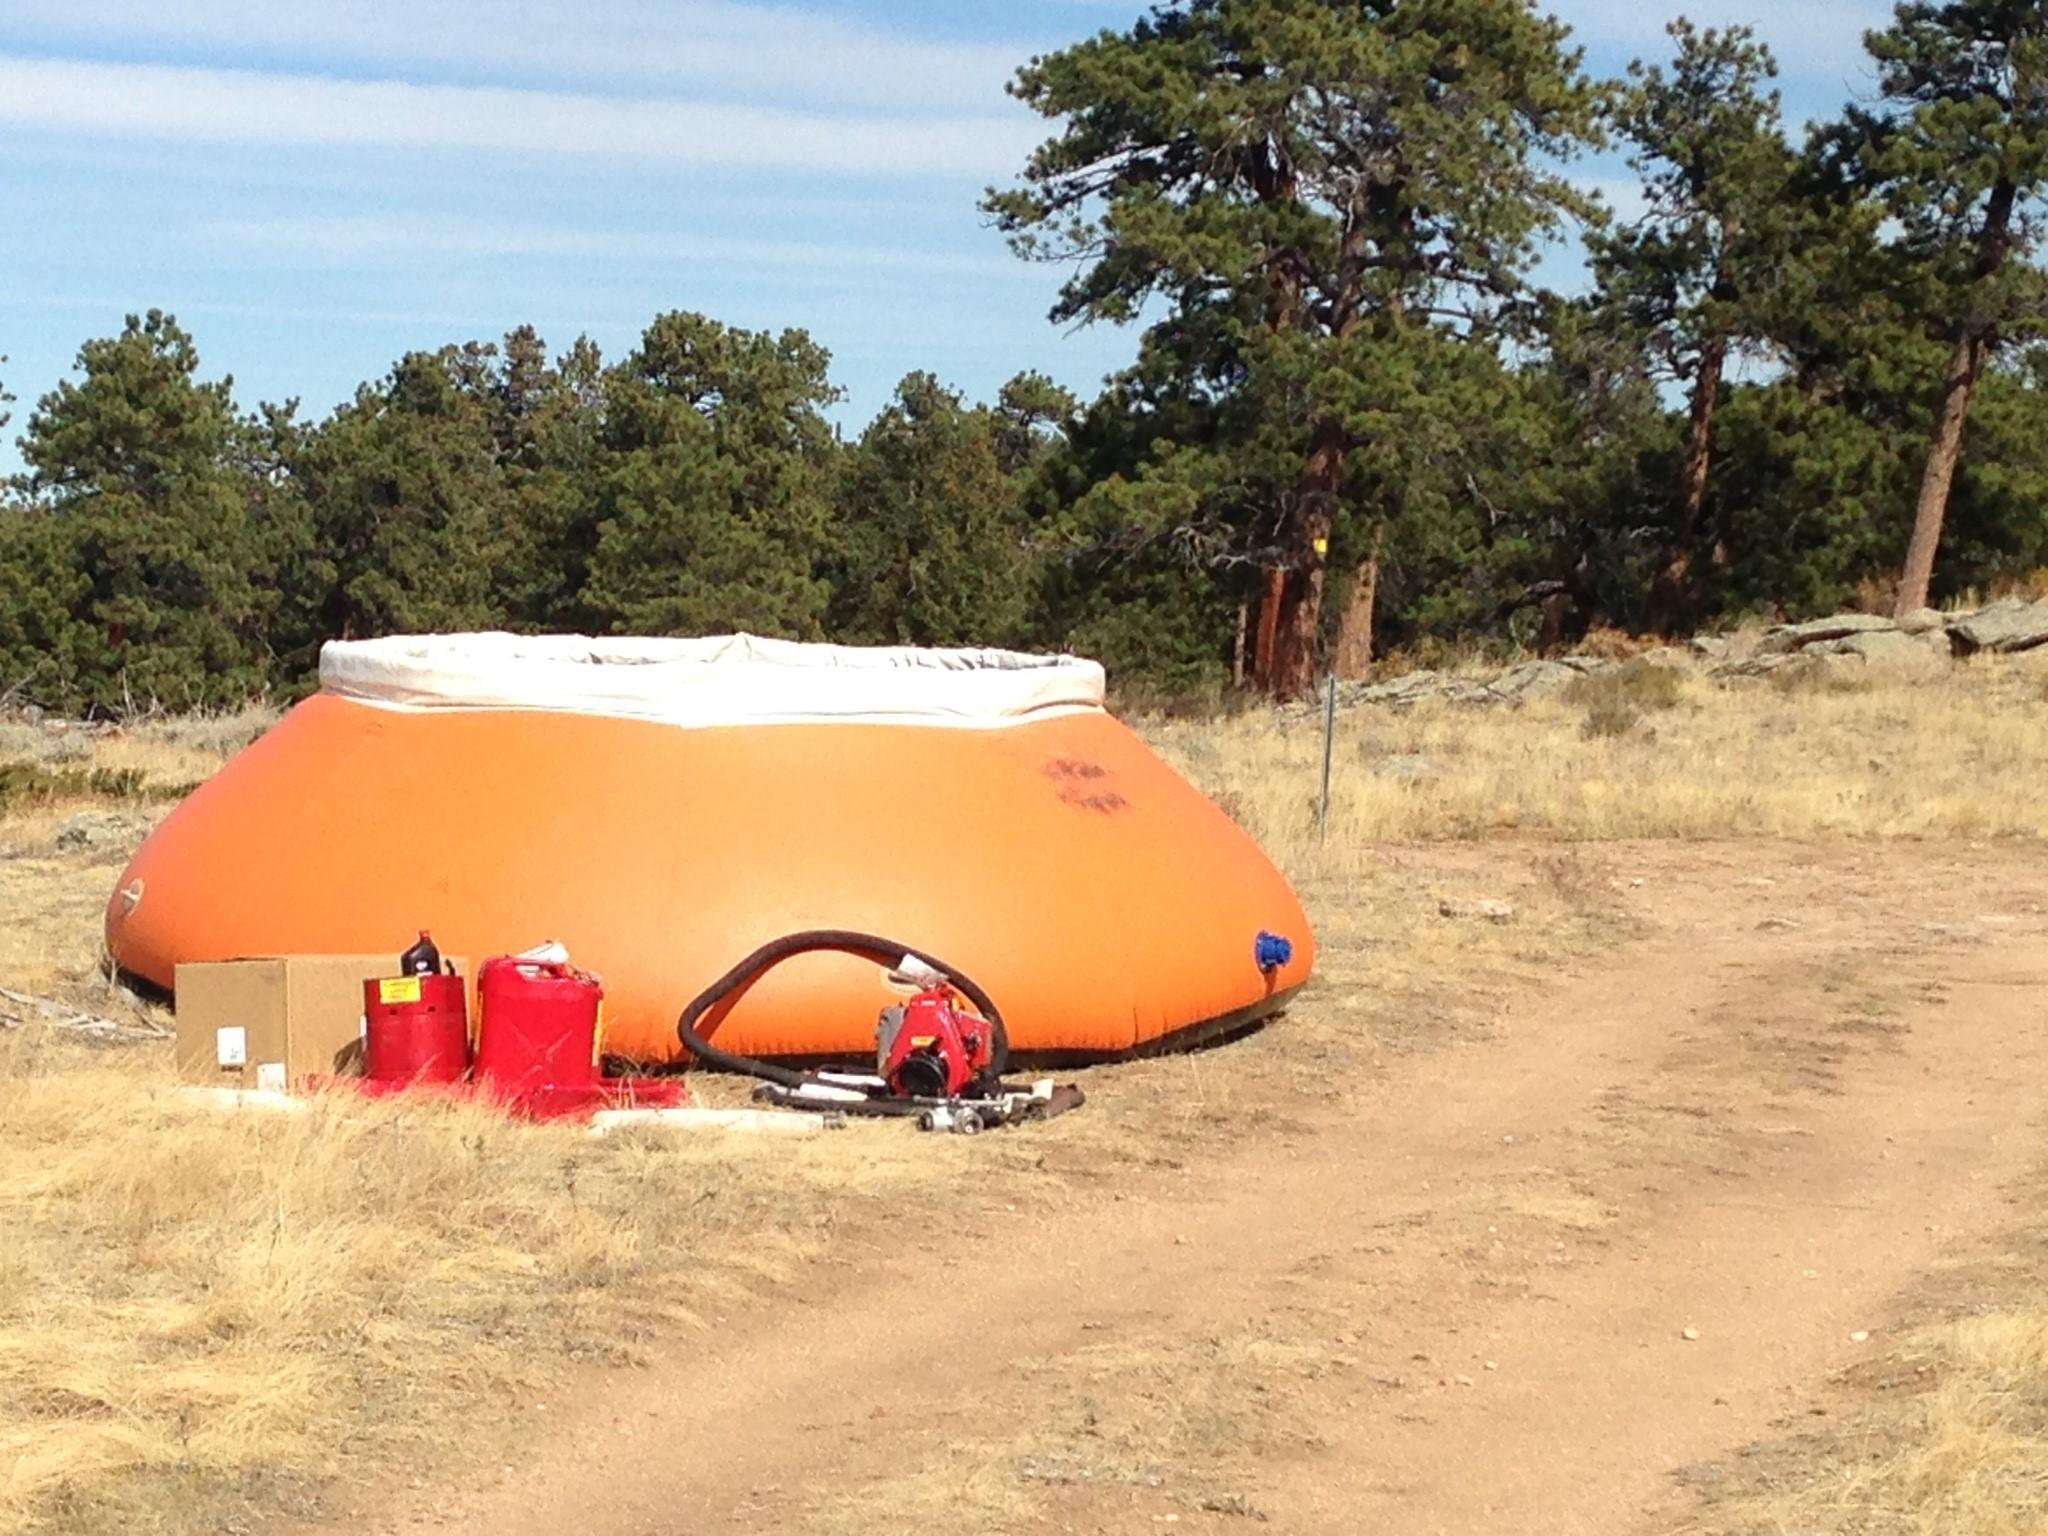 A large, bright orange container holding 3,000 gallons of water sits in the grass.